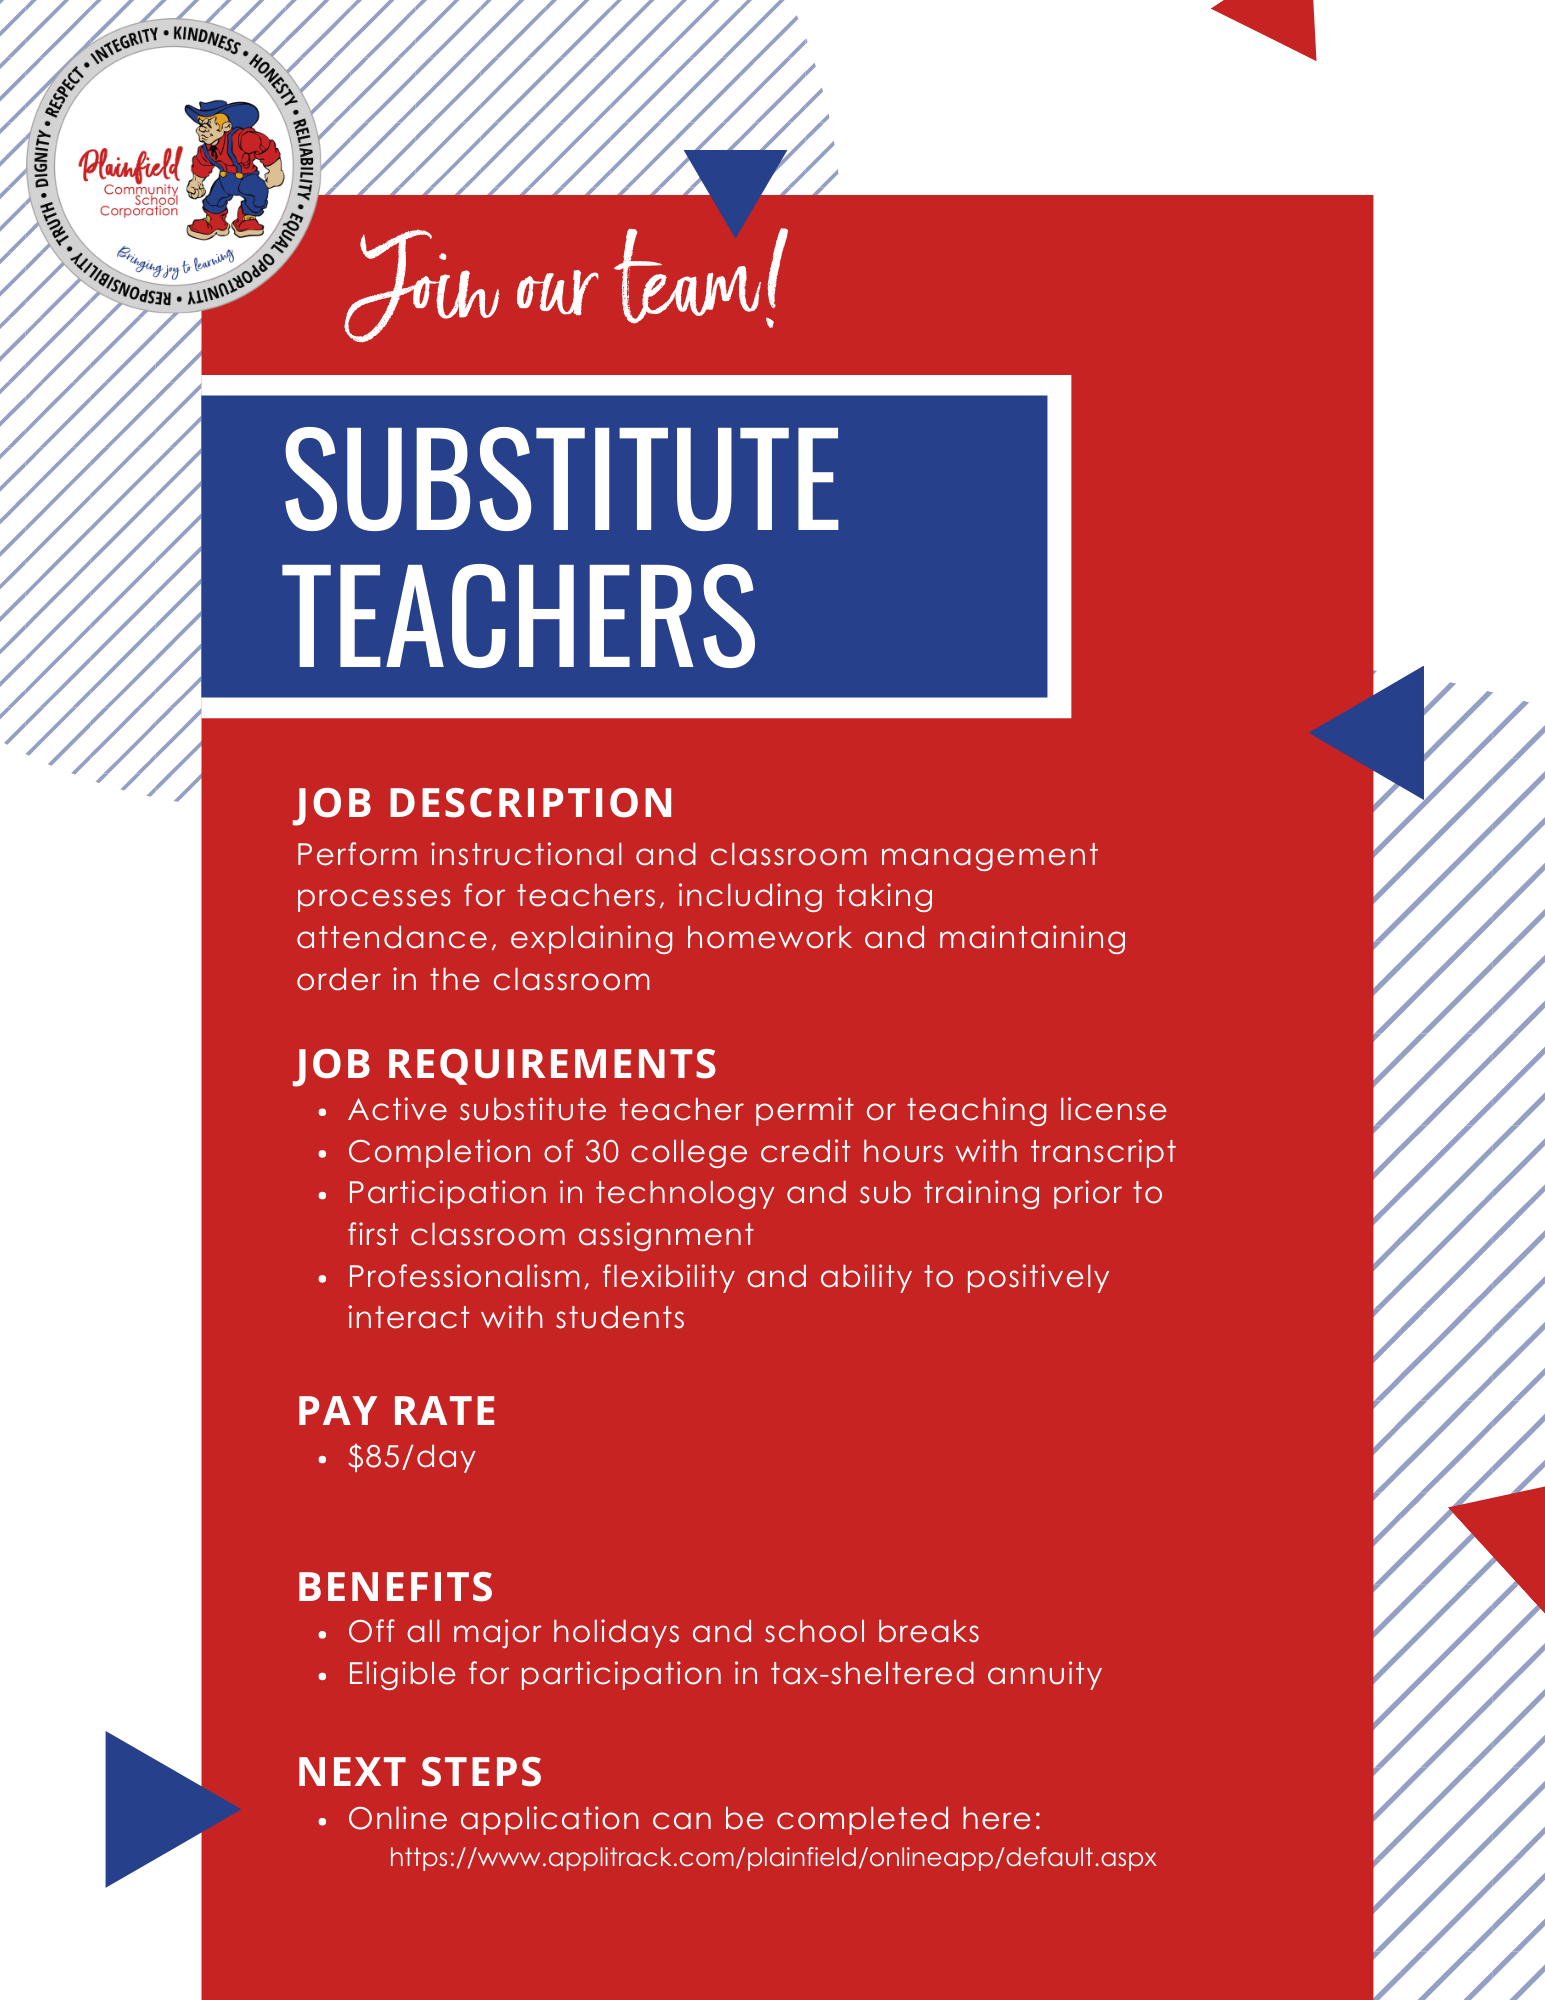 Information about being a substitute teacher in Plainfield Schools